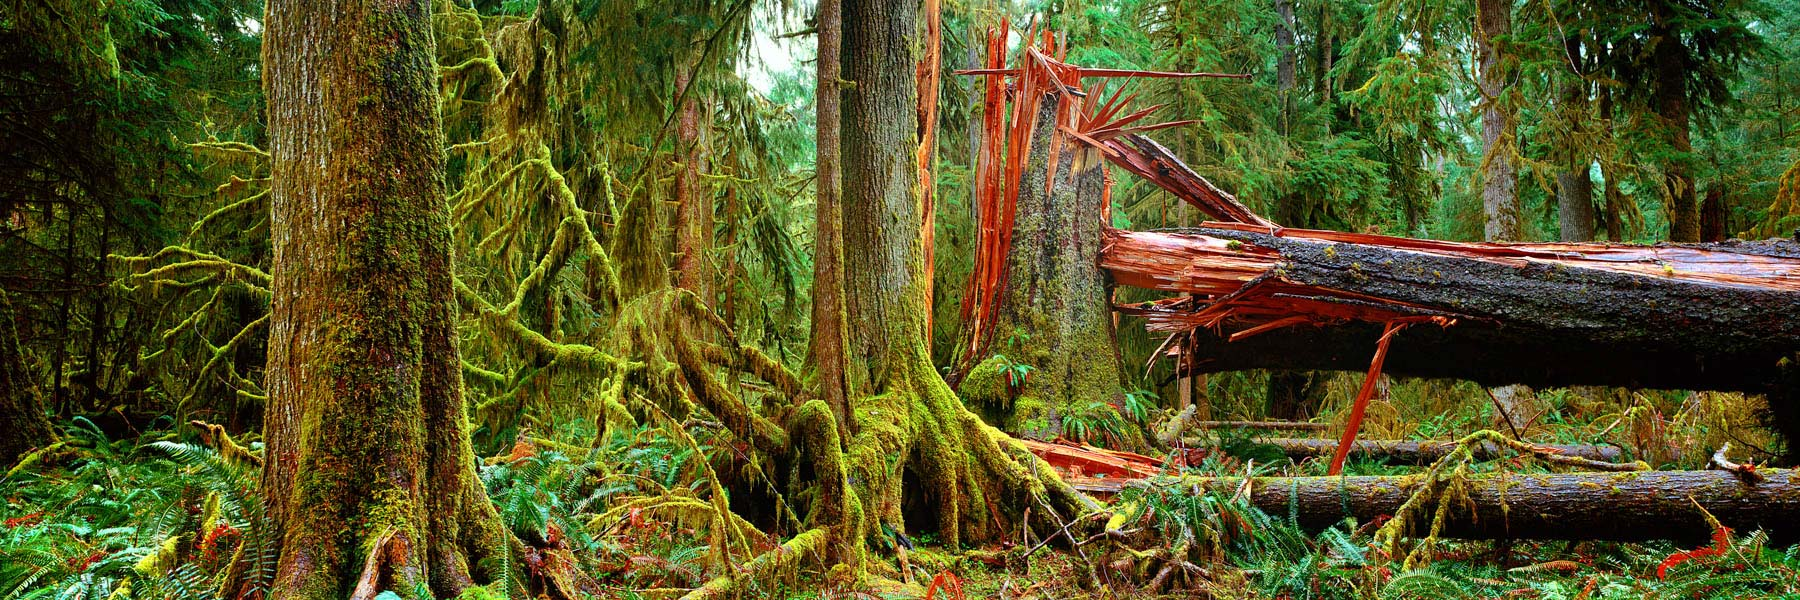 Fallen tree, Olympic National Park, Washington state, USA.